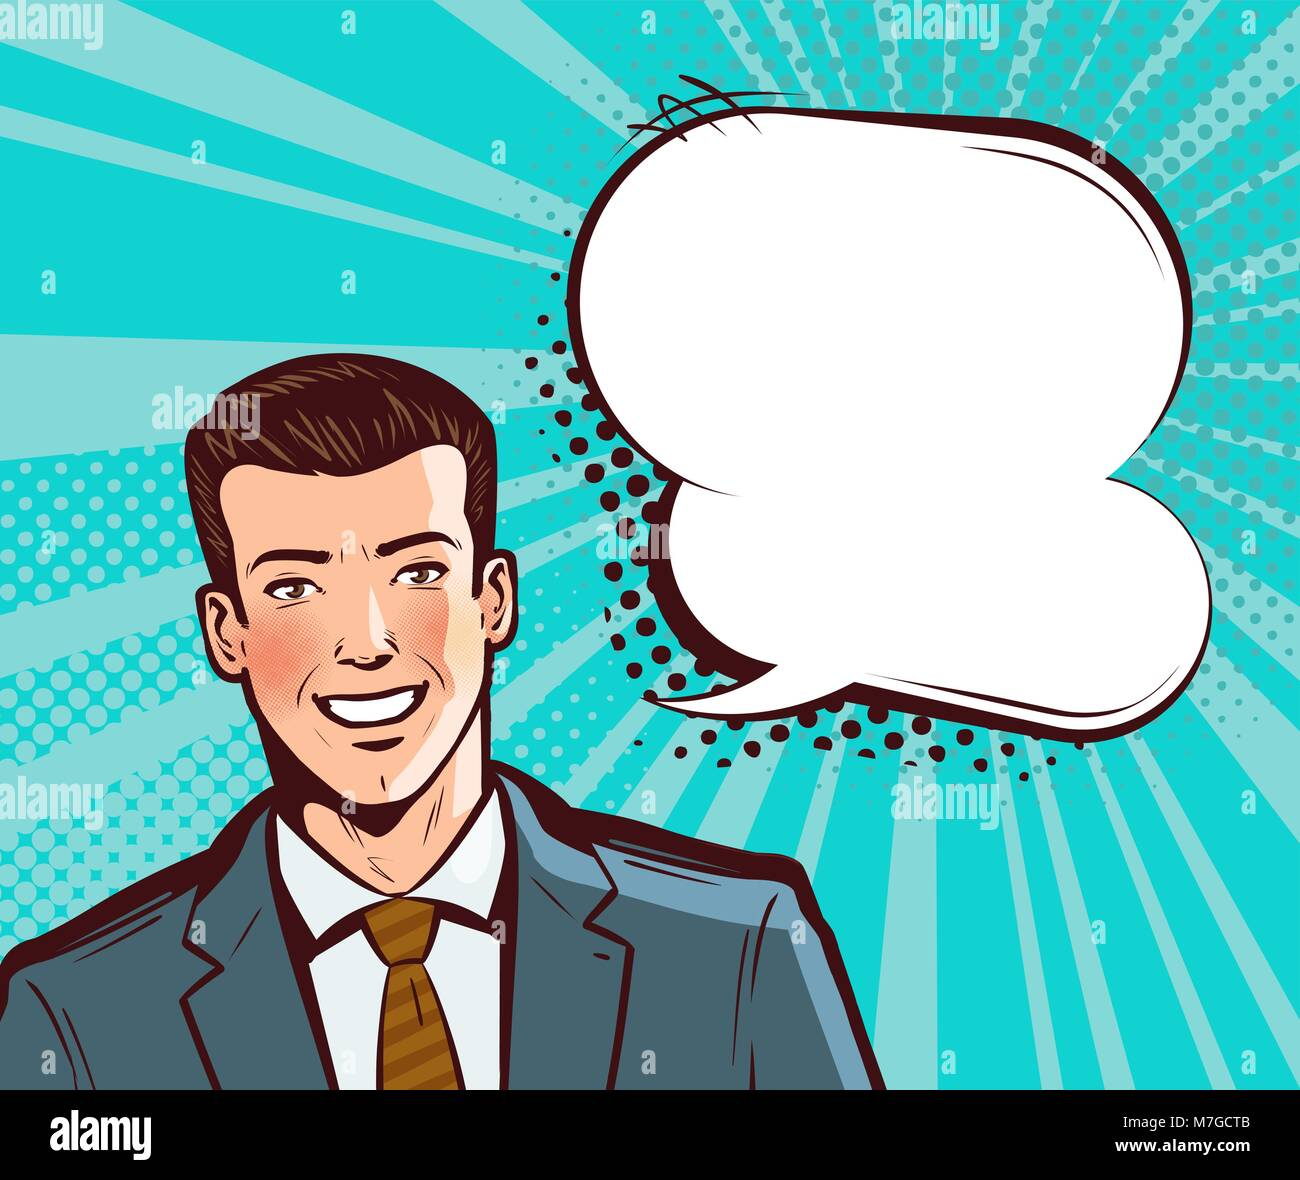 Businessman or young man in suit talking. Business concept in pop art retro comic style. Cartoon vector illustration - Stock Vector